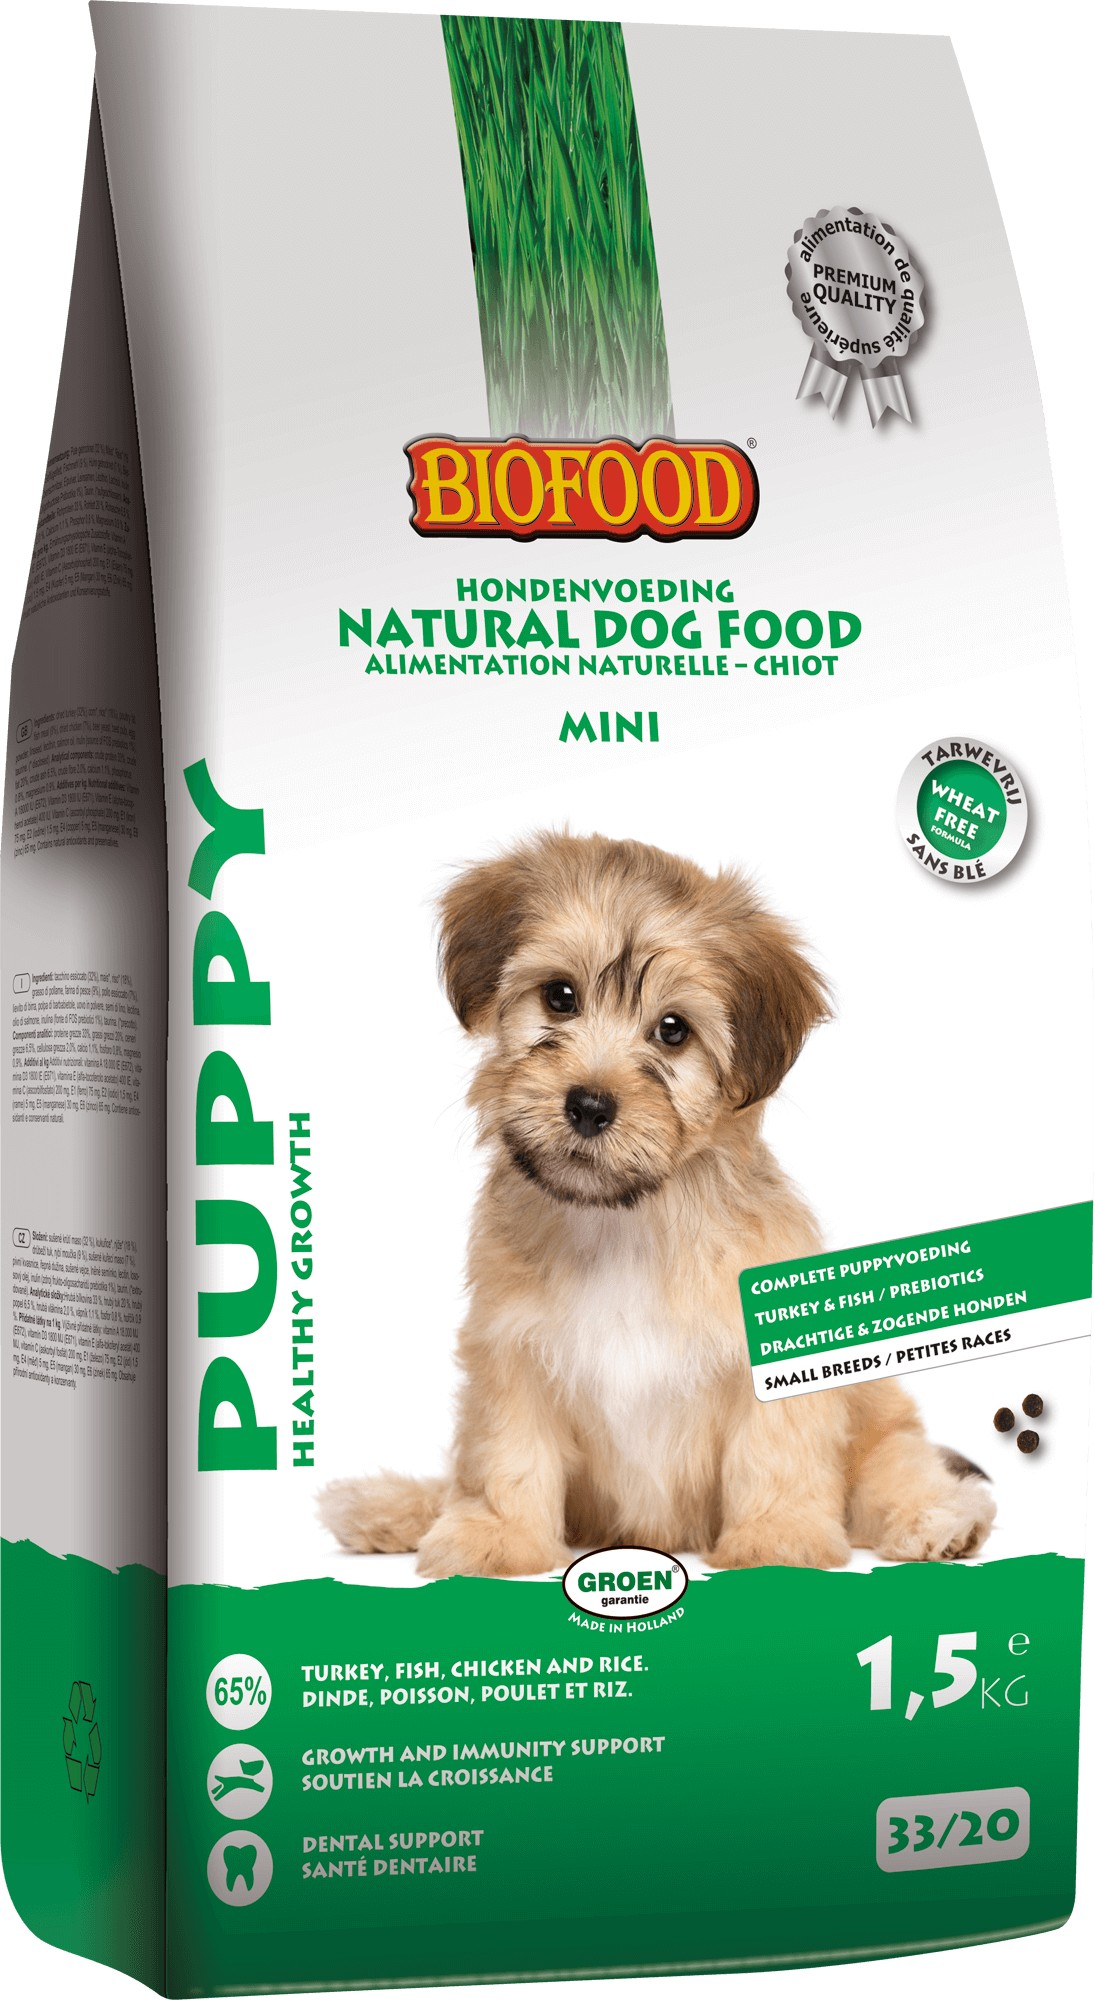 Biofood Puppy Small Breed hondenvoer